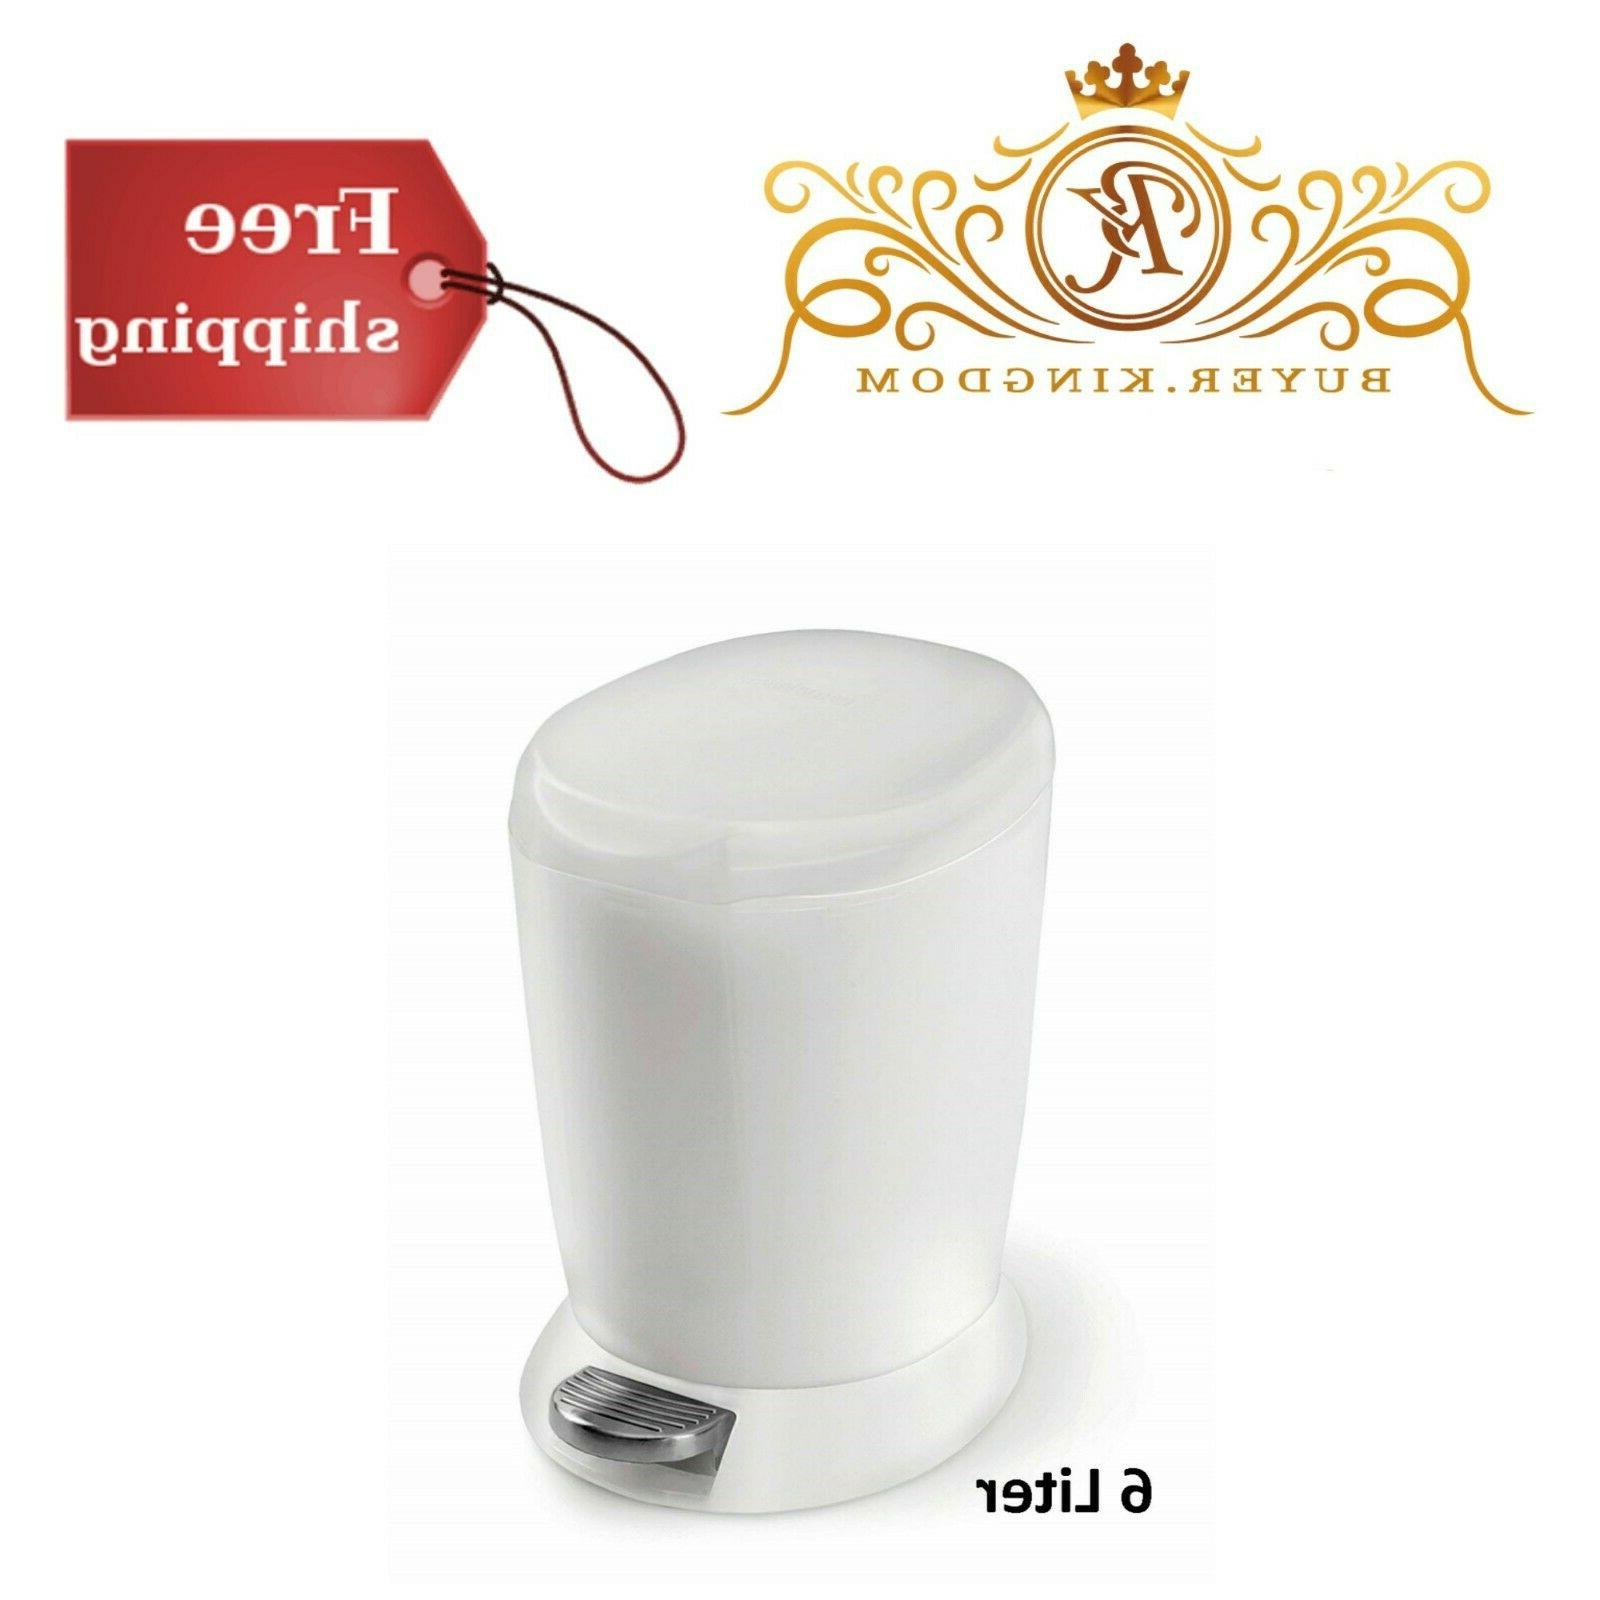 Compact Round Bathroom Step Trash Can White 6 Liter Office P